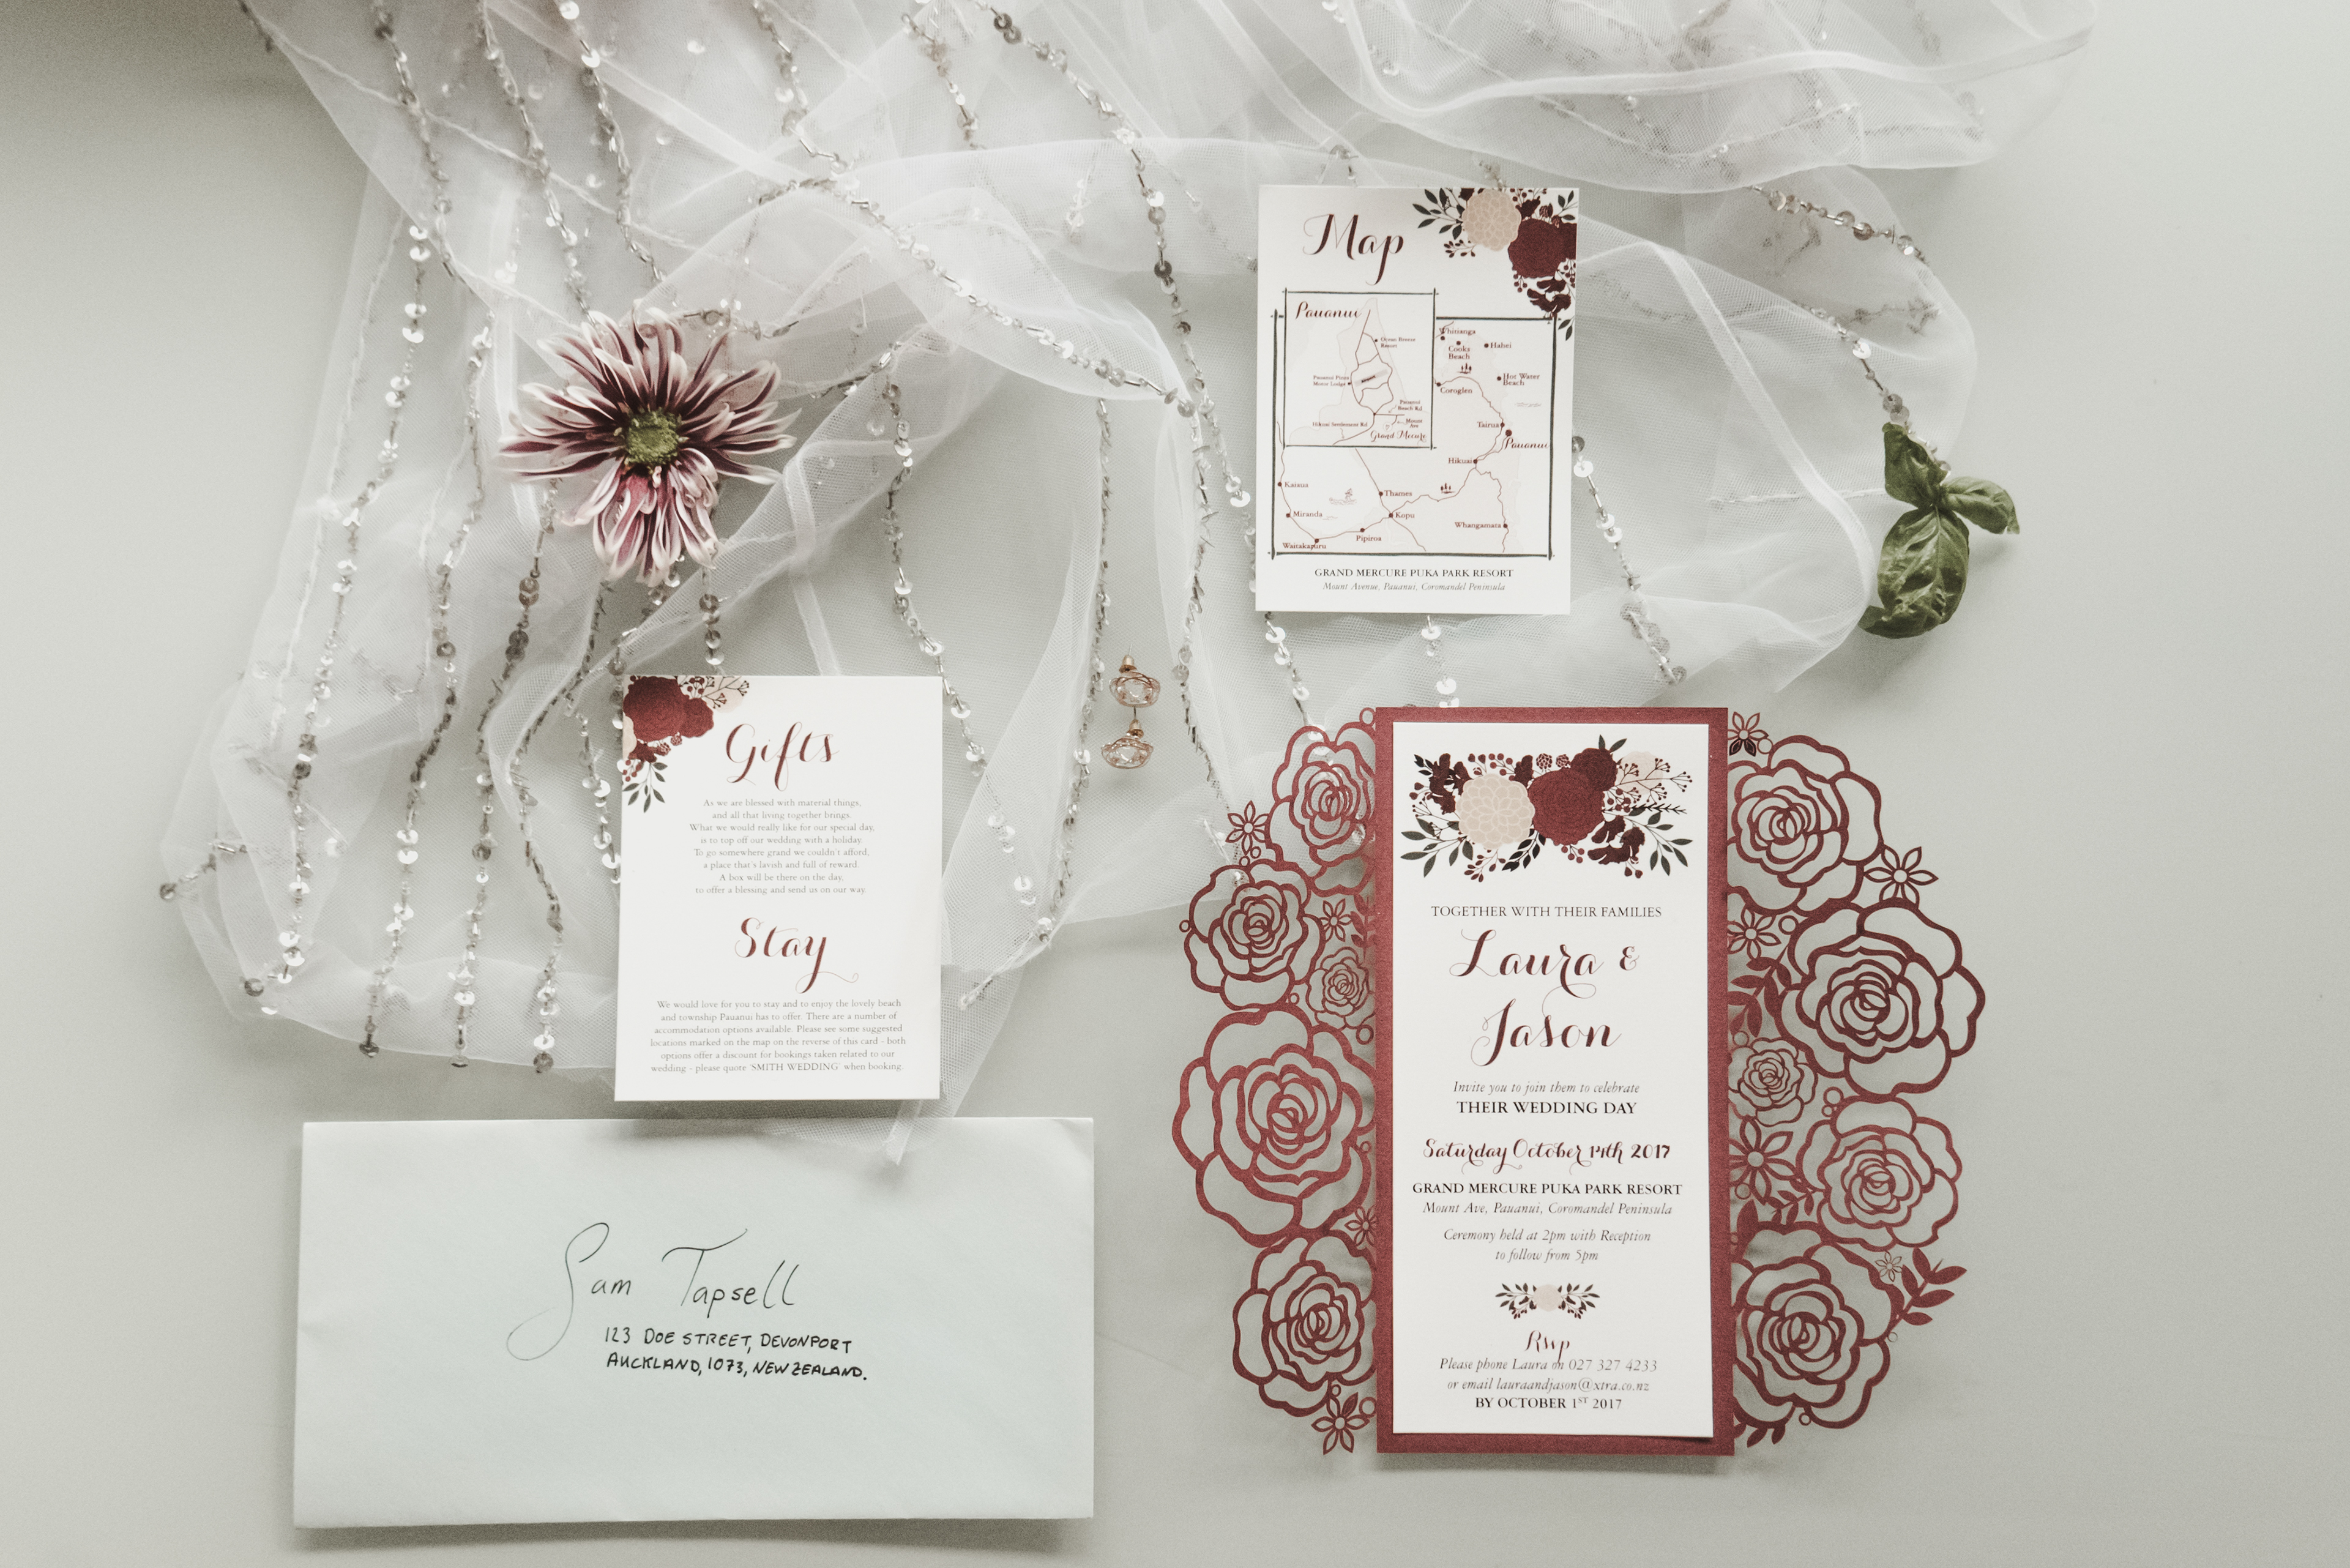 WEDDING INVITATIONS AND STATIONERY on Behance